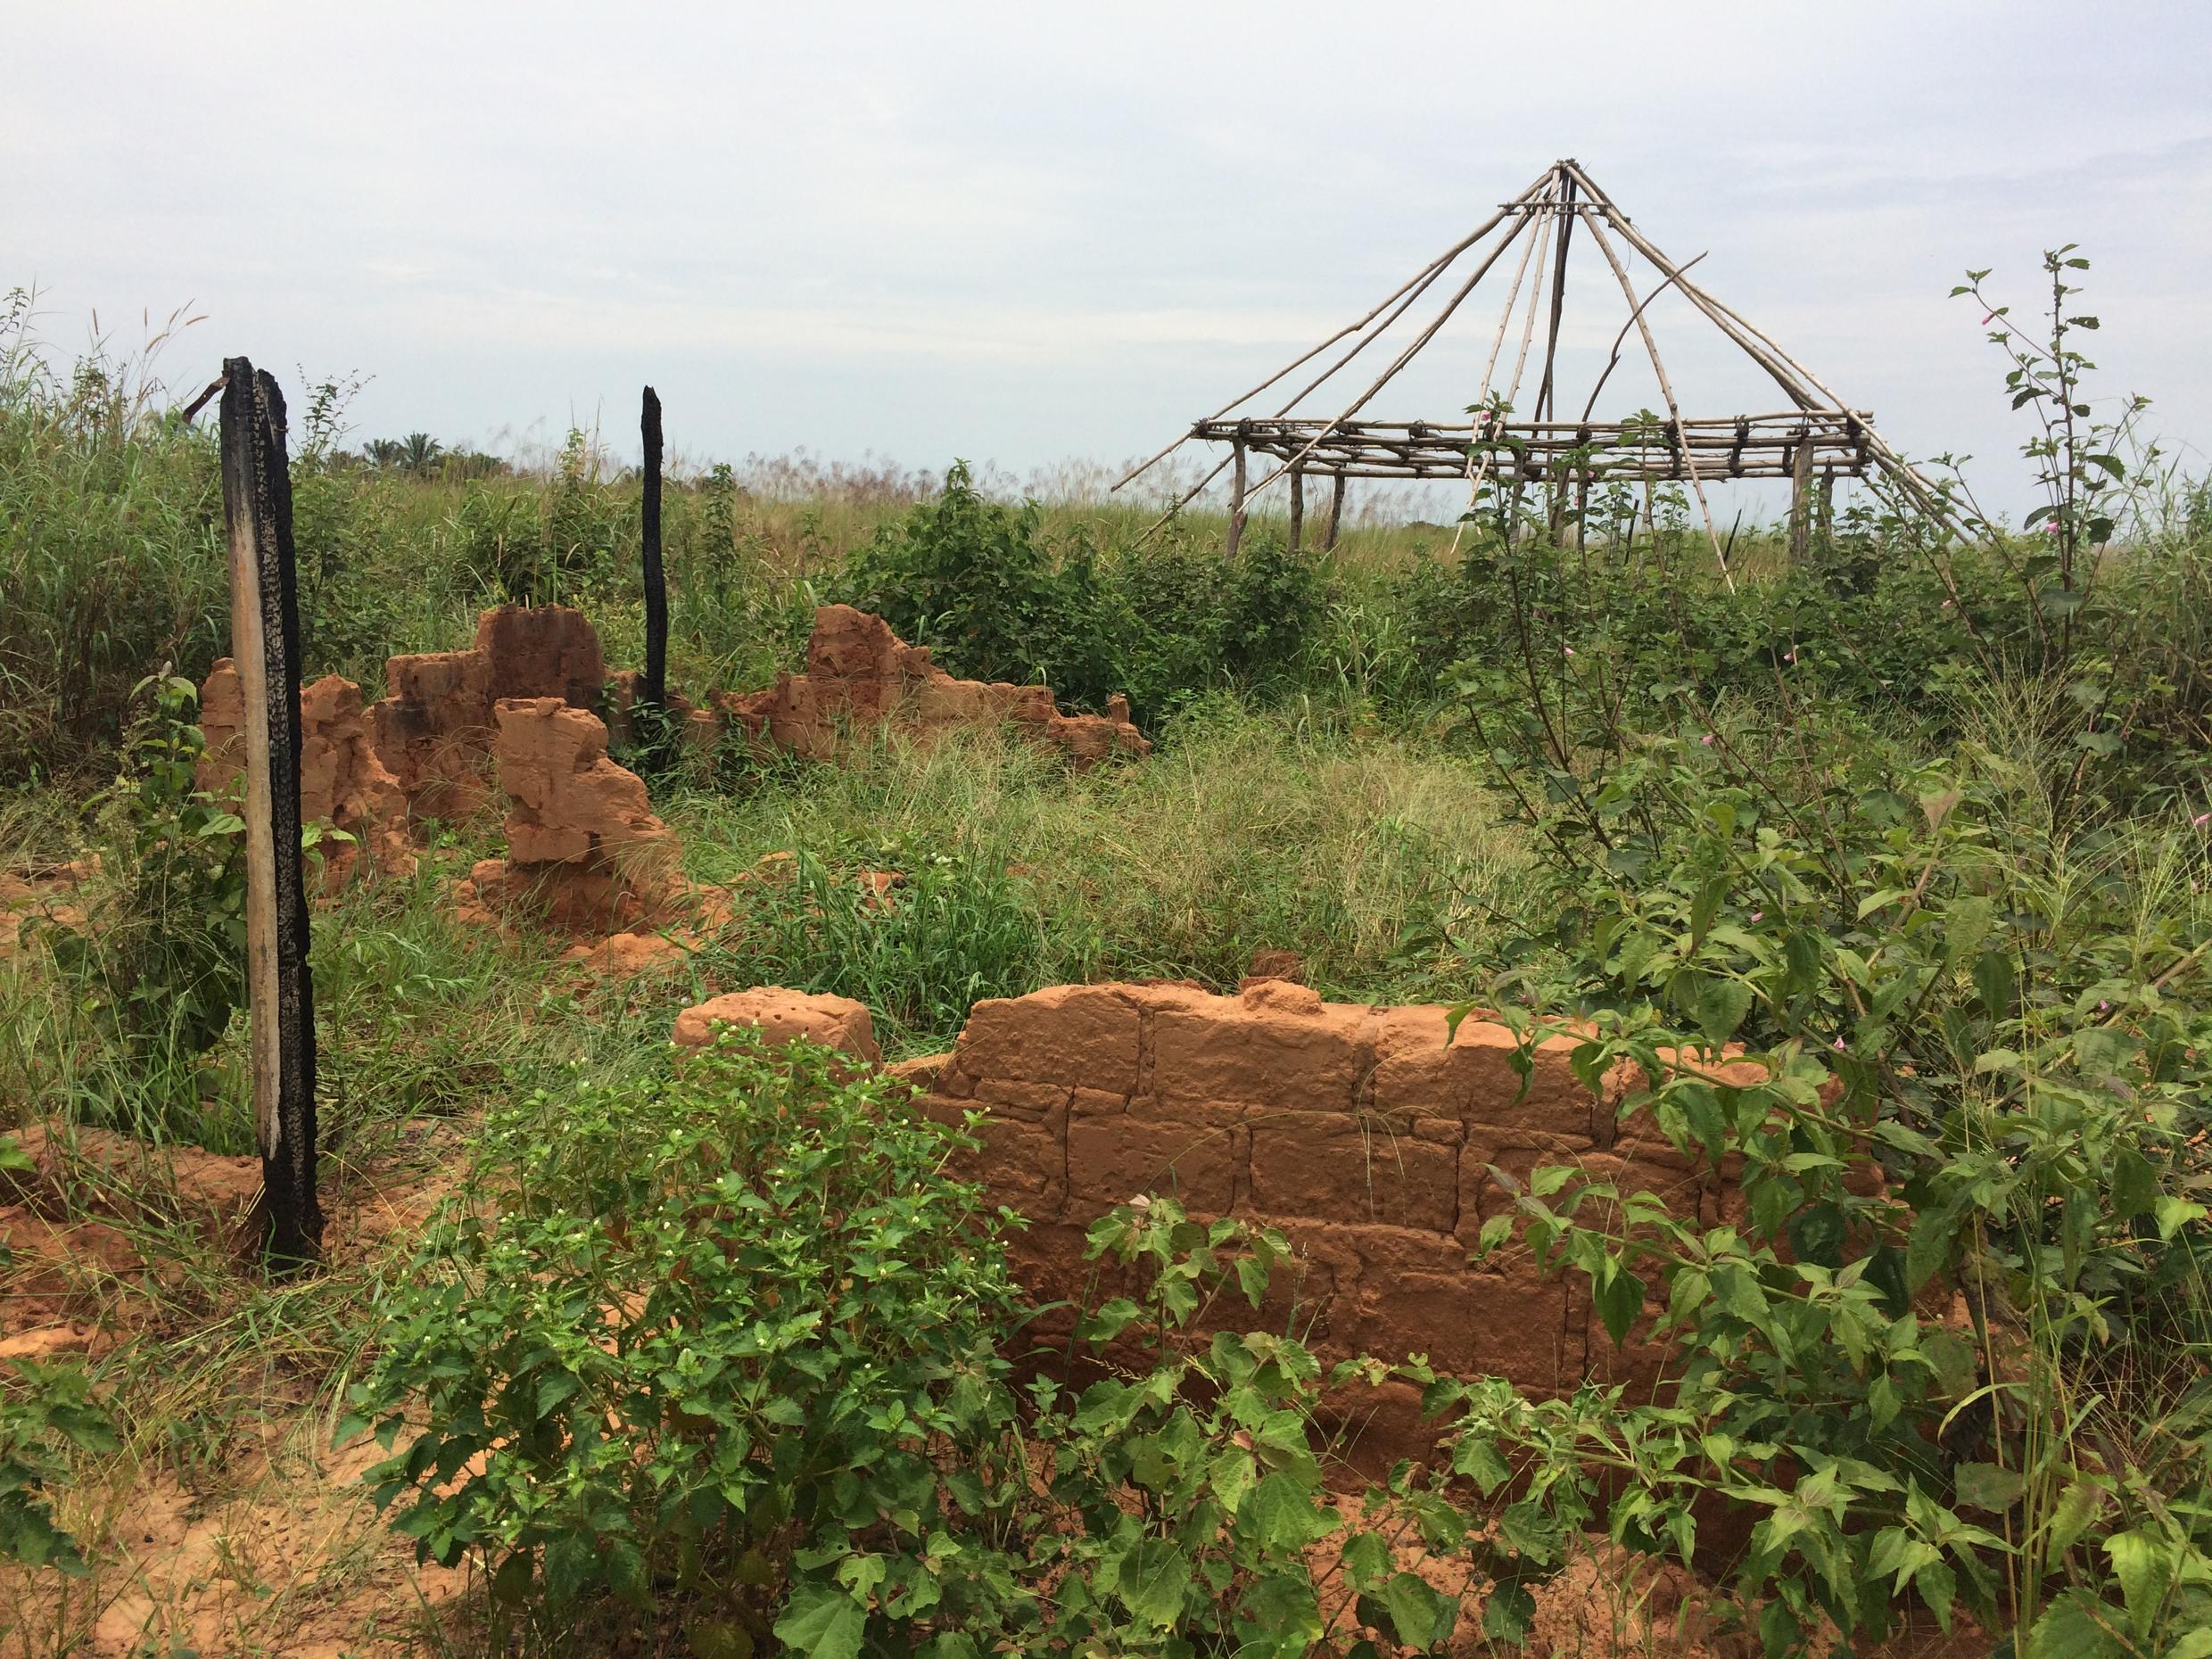 The Army attacked the house of Kamuina Nsapu, who in turn erected barriers around his house, which is now reduced to rubble.